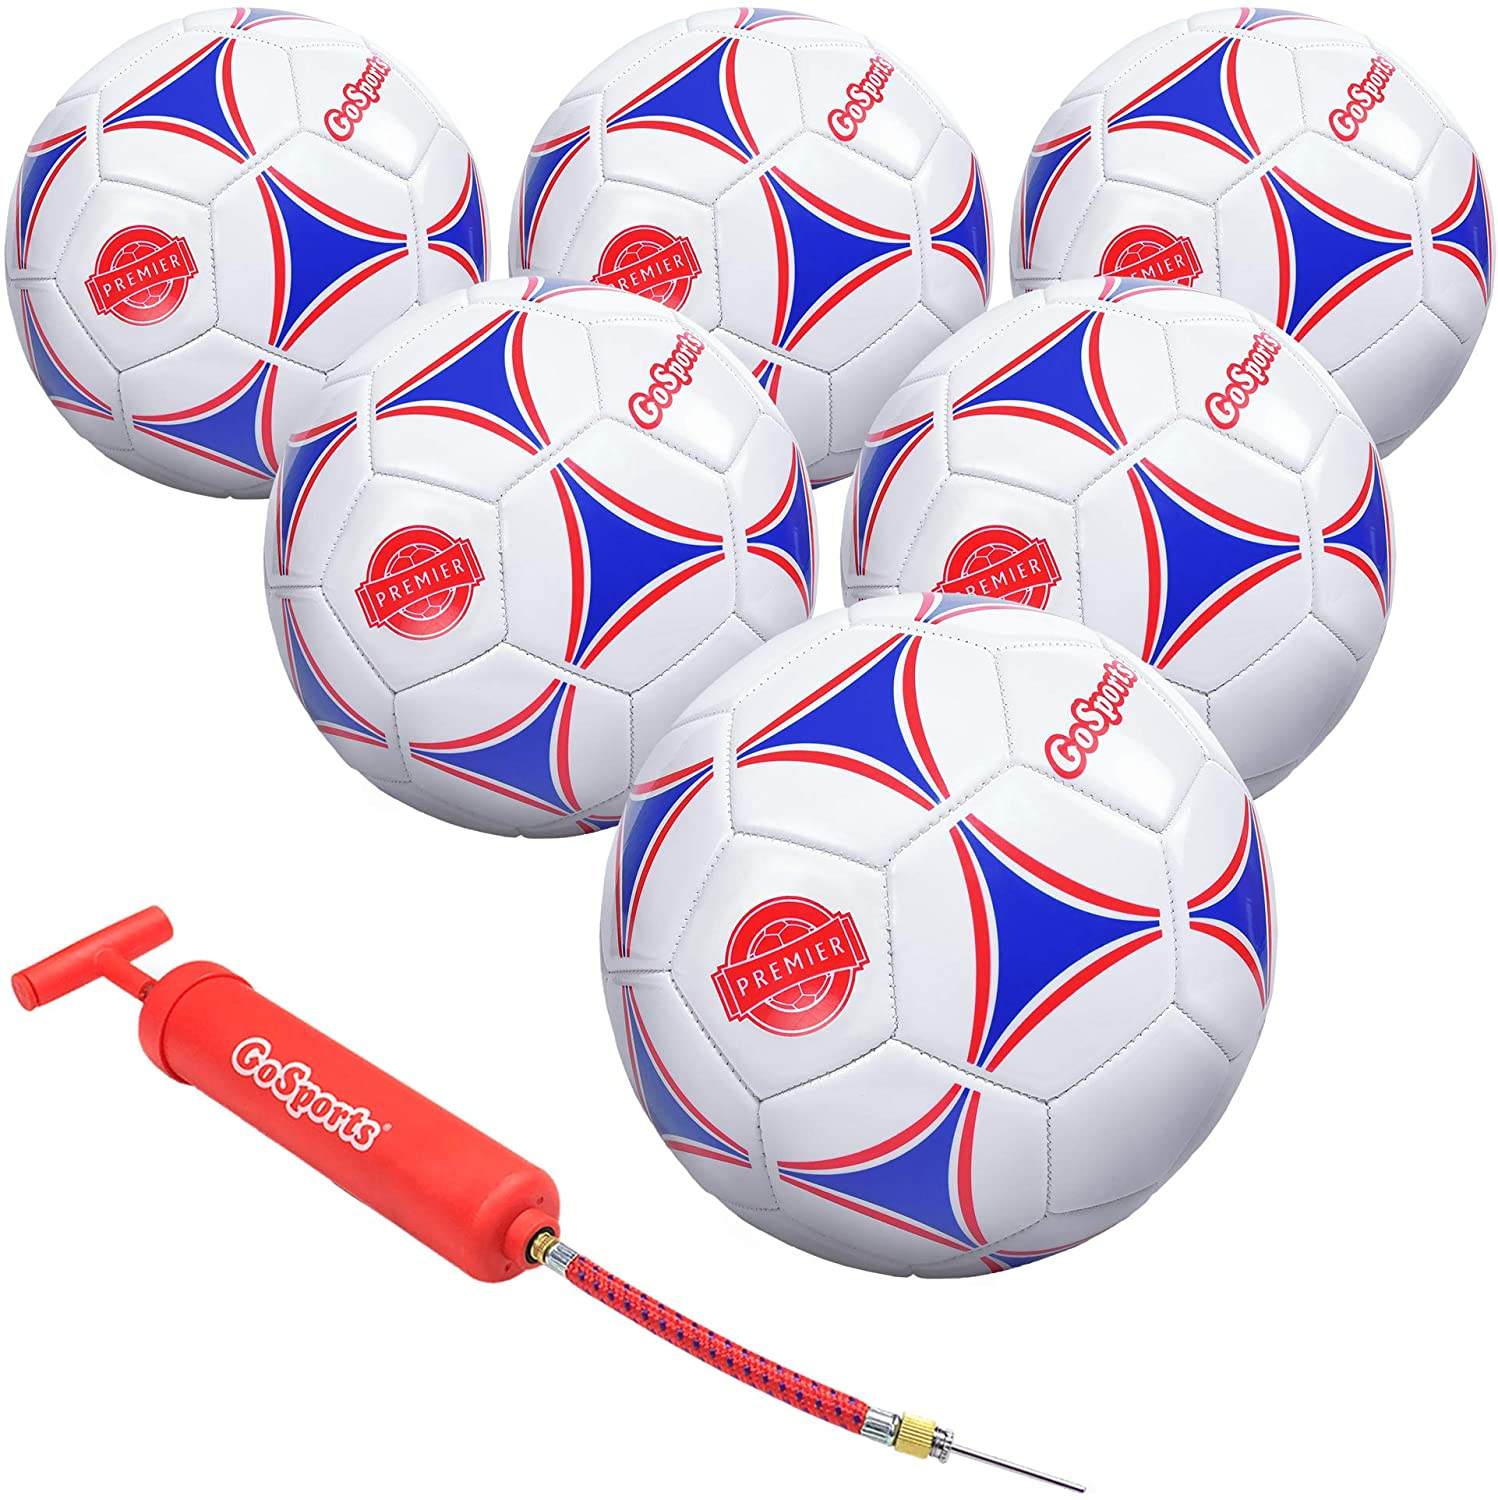 GoSports Premier Soccer Ball with Premium Pump - Available as Single Balls or 6 Packs - Choose Your Size : Sports & Outdoors